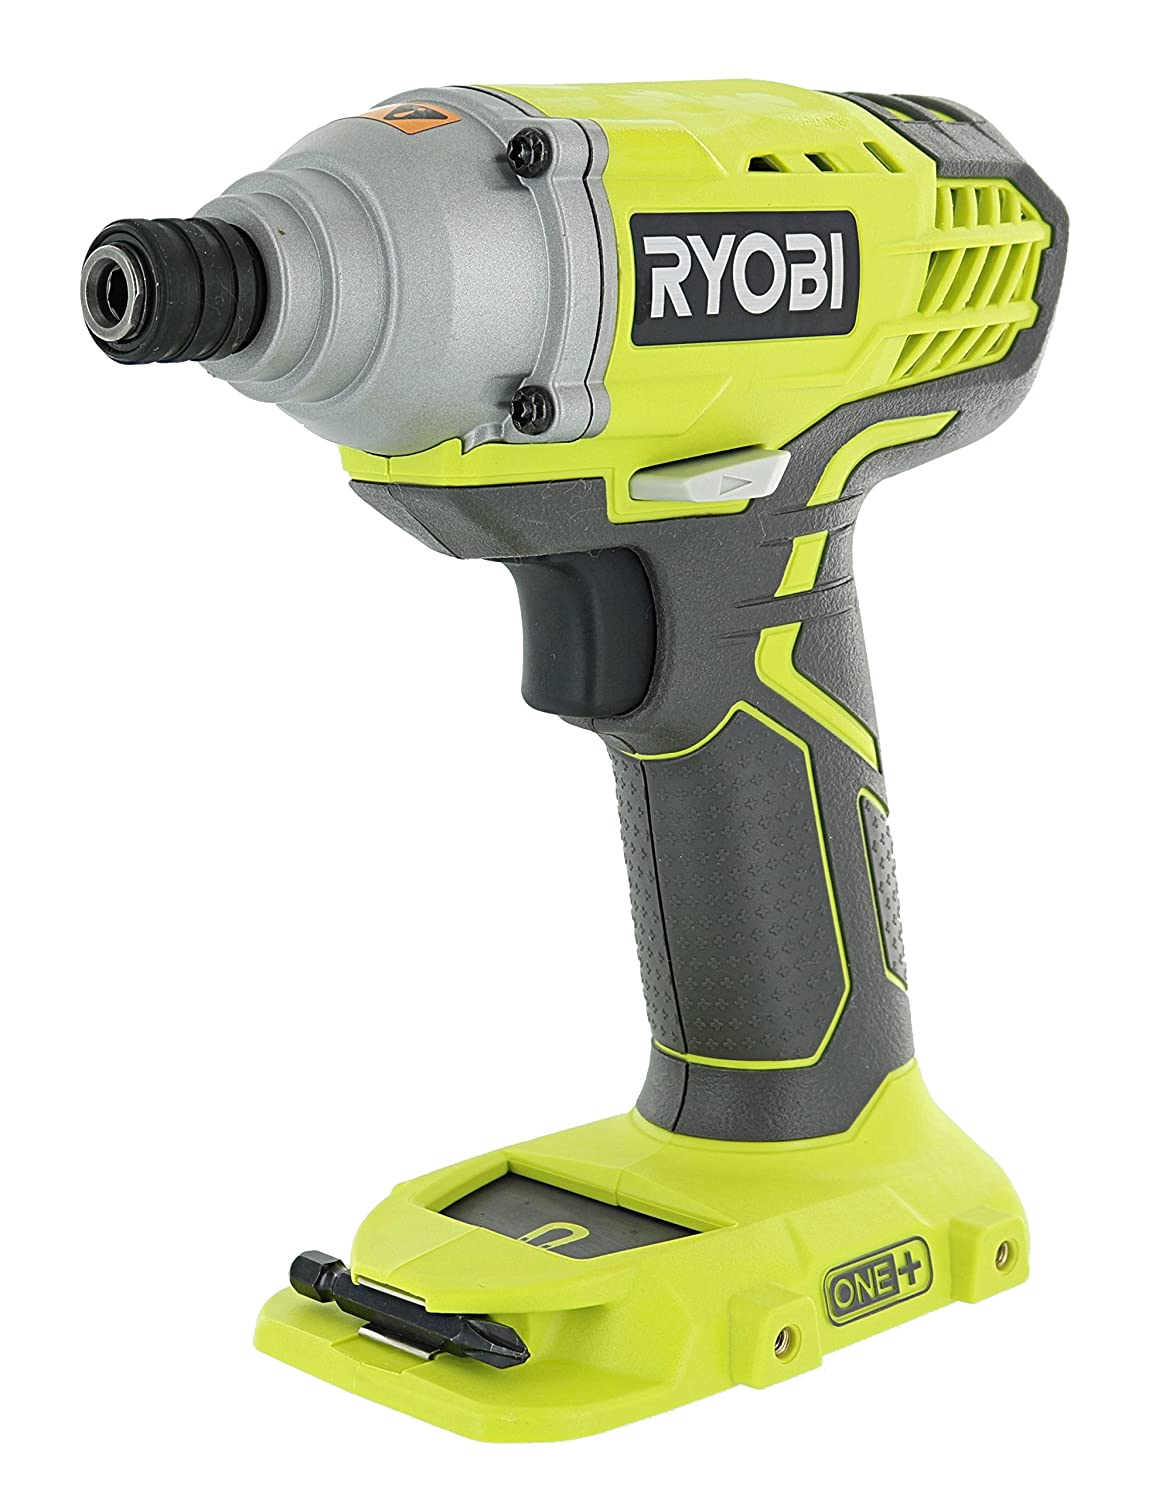 18 Volt Lithium Ion Impact Driver with 1,600 Pounds of Torque Ryobi P235 1//4 Inch One Battery Not Included, Power Tool Only